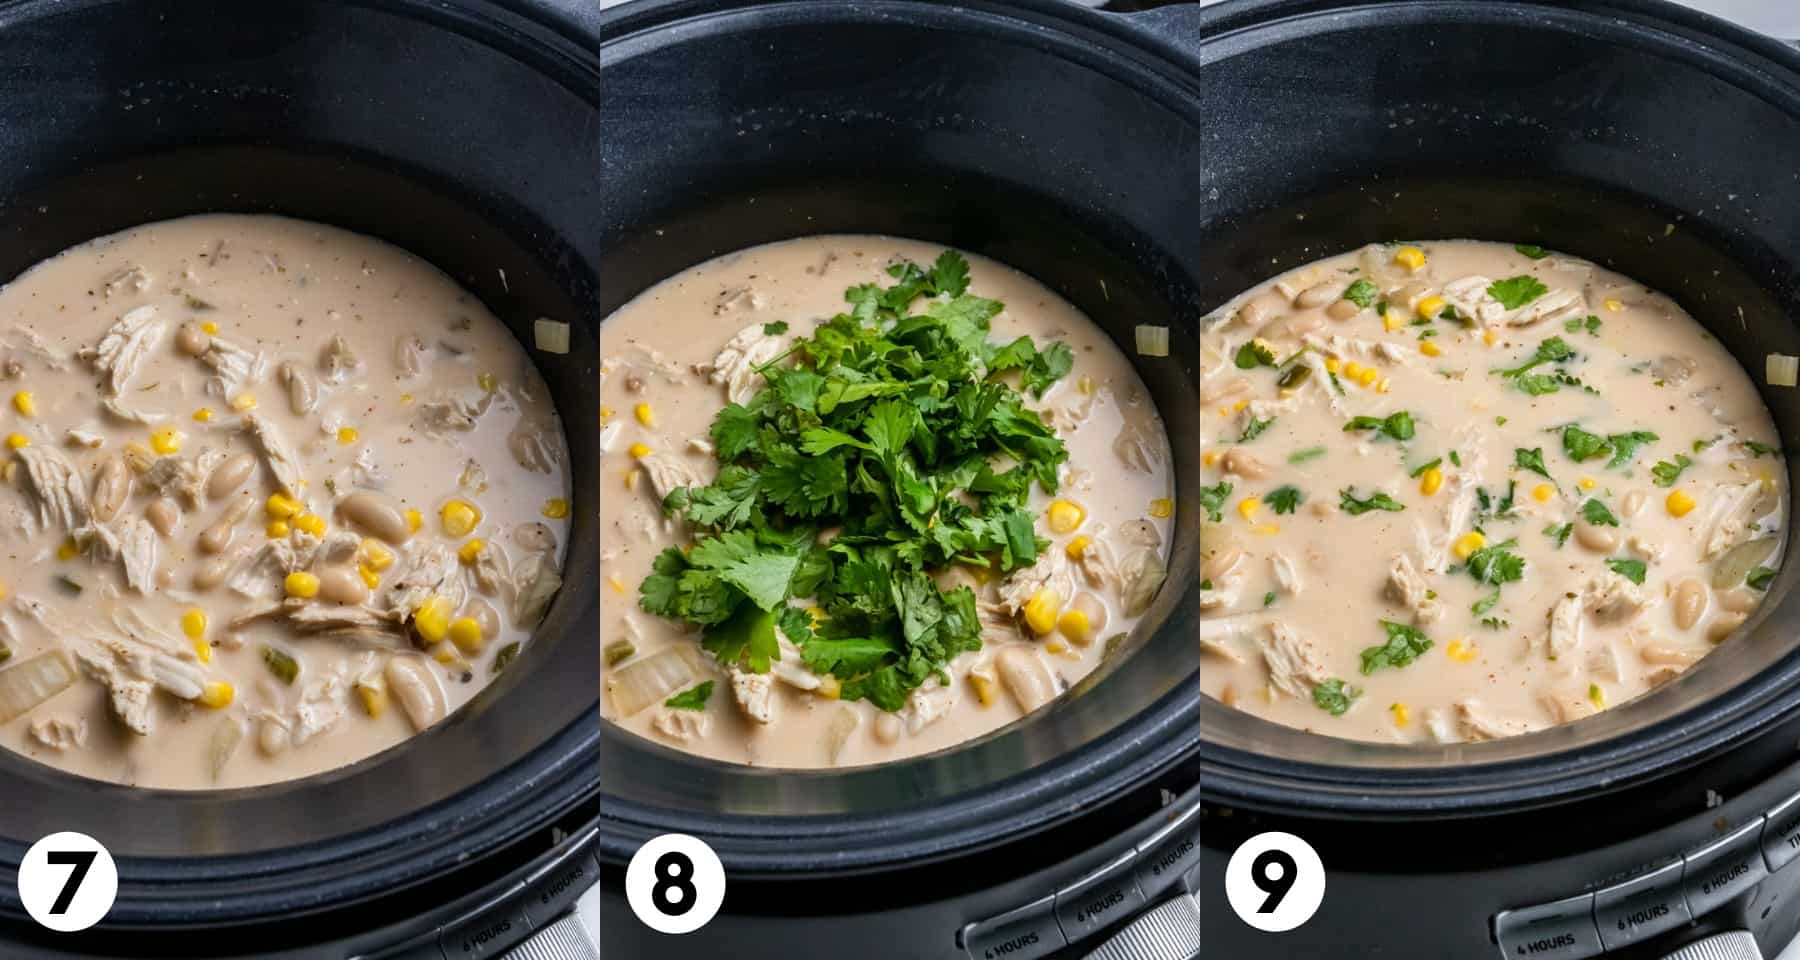 Cream cheese stirred into soup and cilantro added in and stirred.